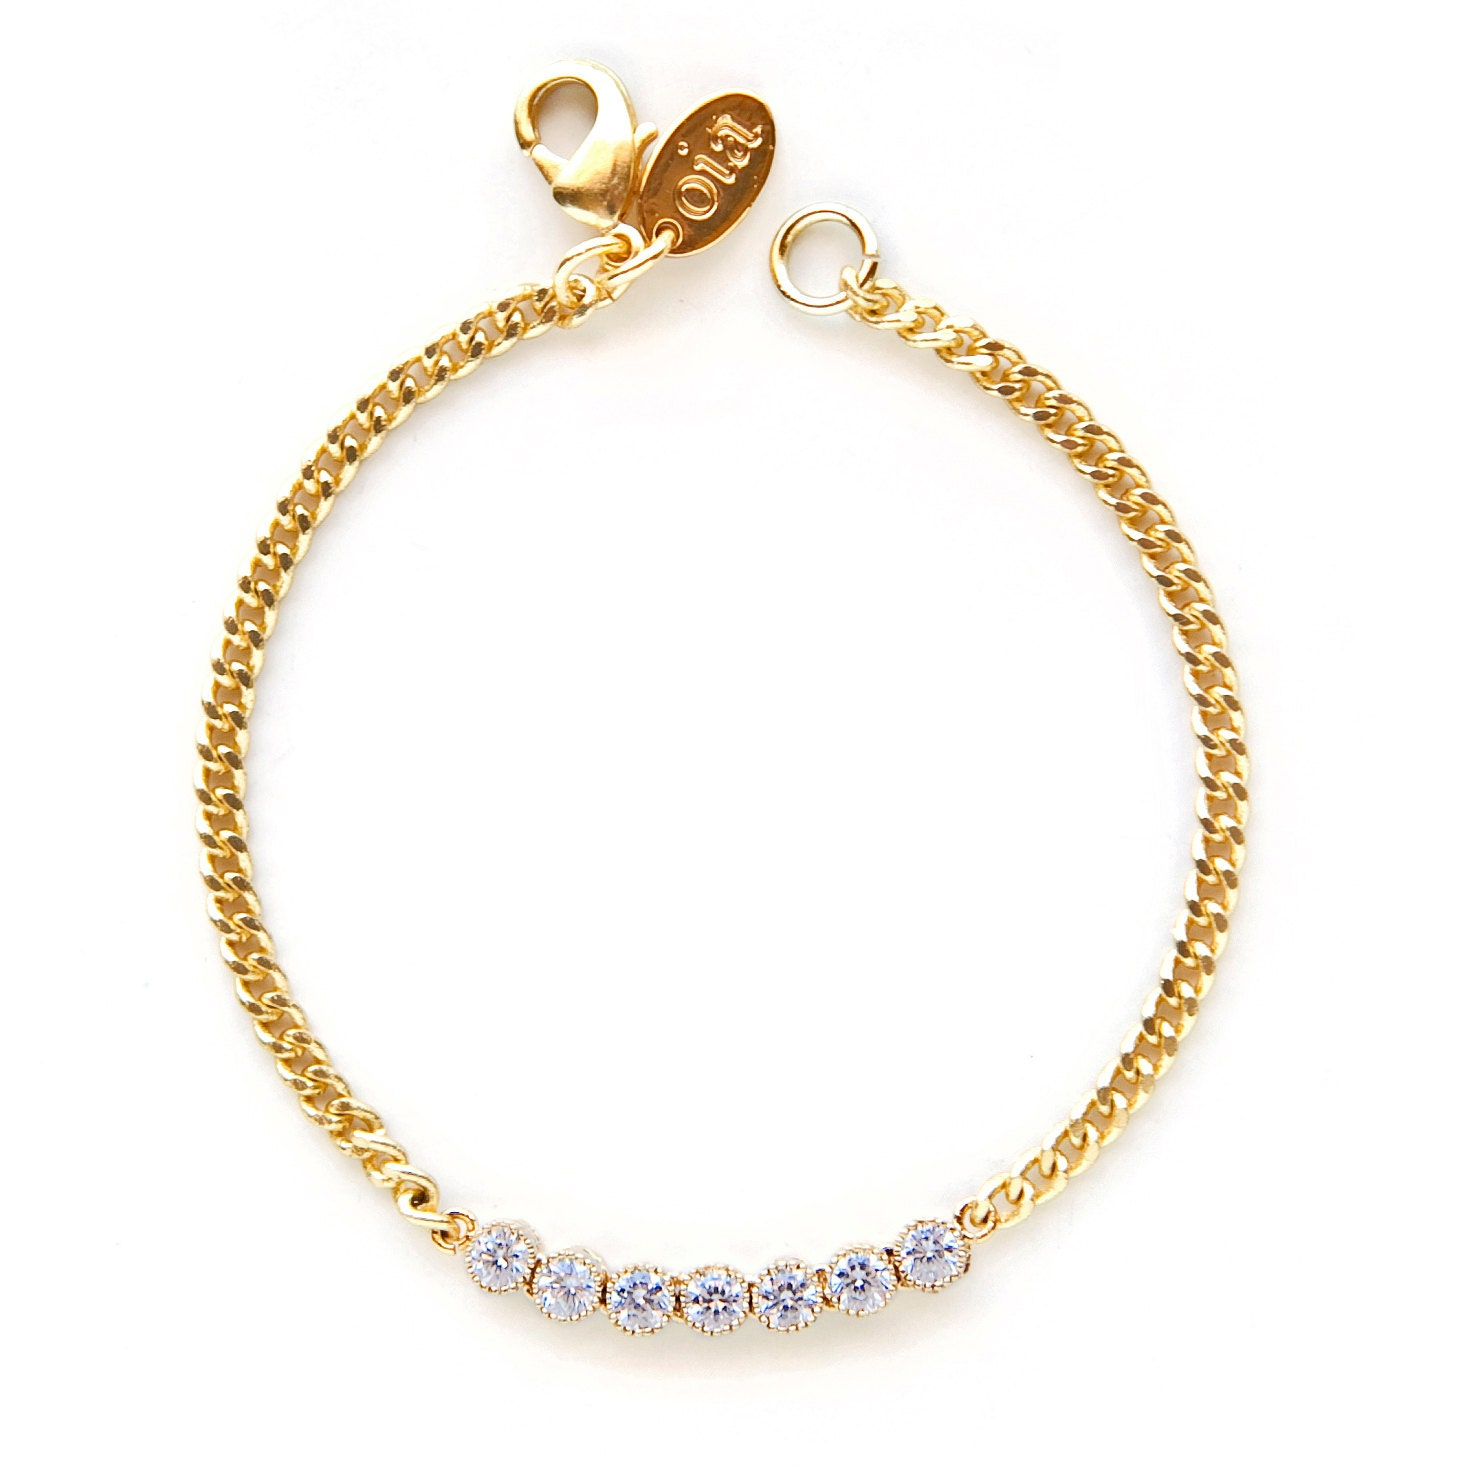 Delicate Gold and CZ Bracelet by oiajules on Etsy